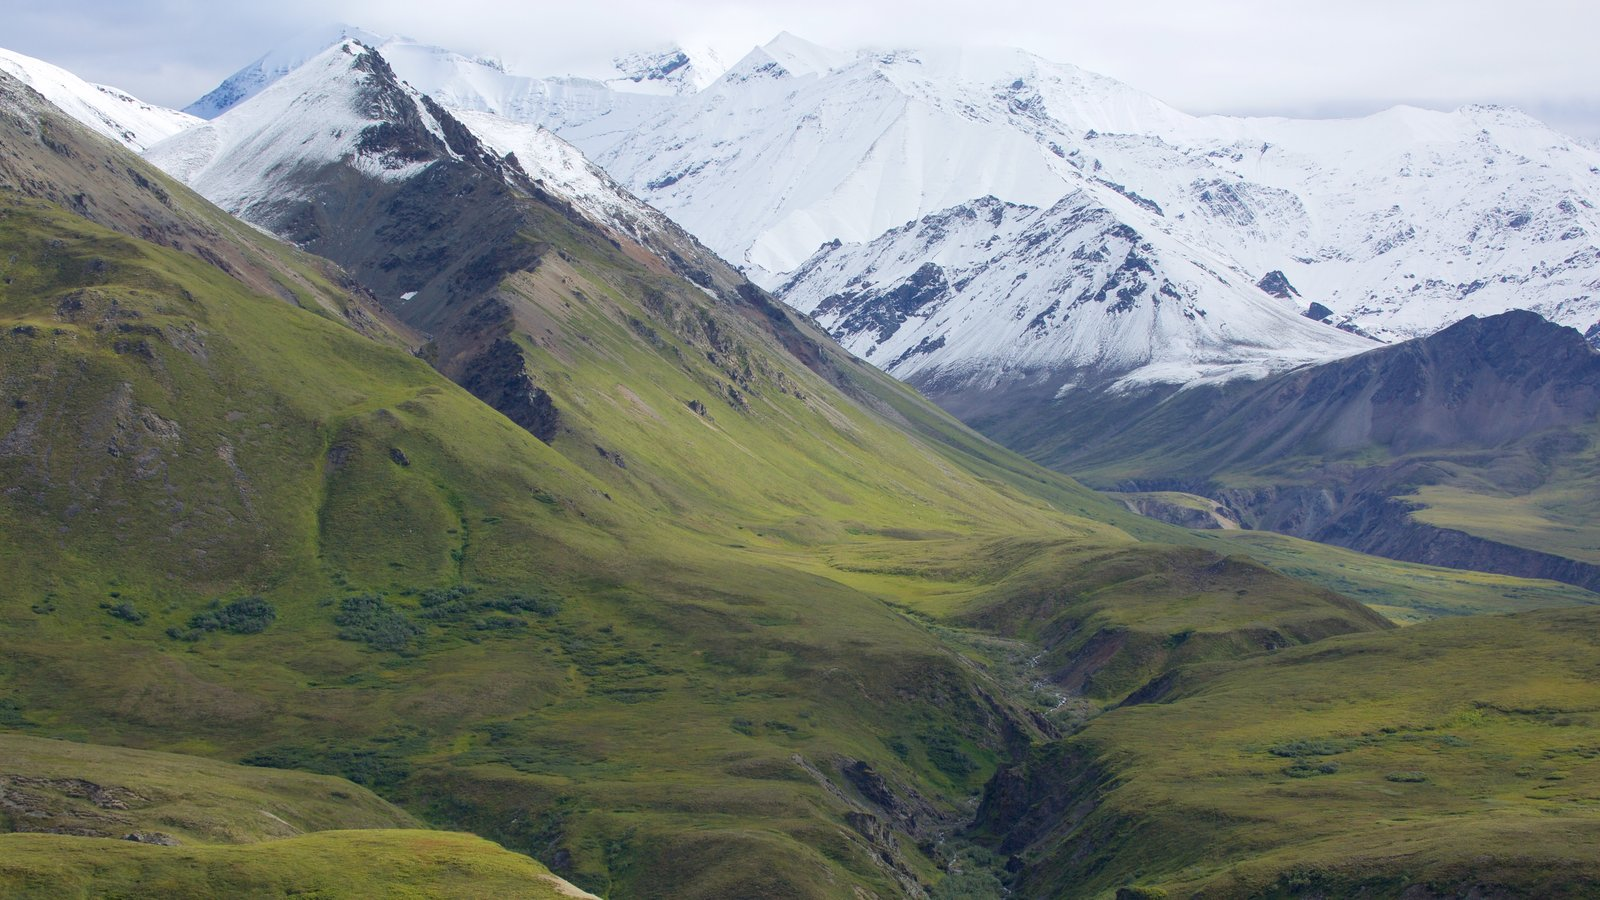 Denali National Park showing snow and mountains